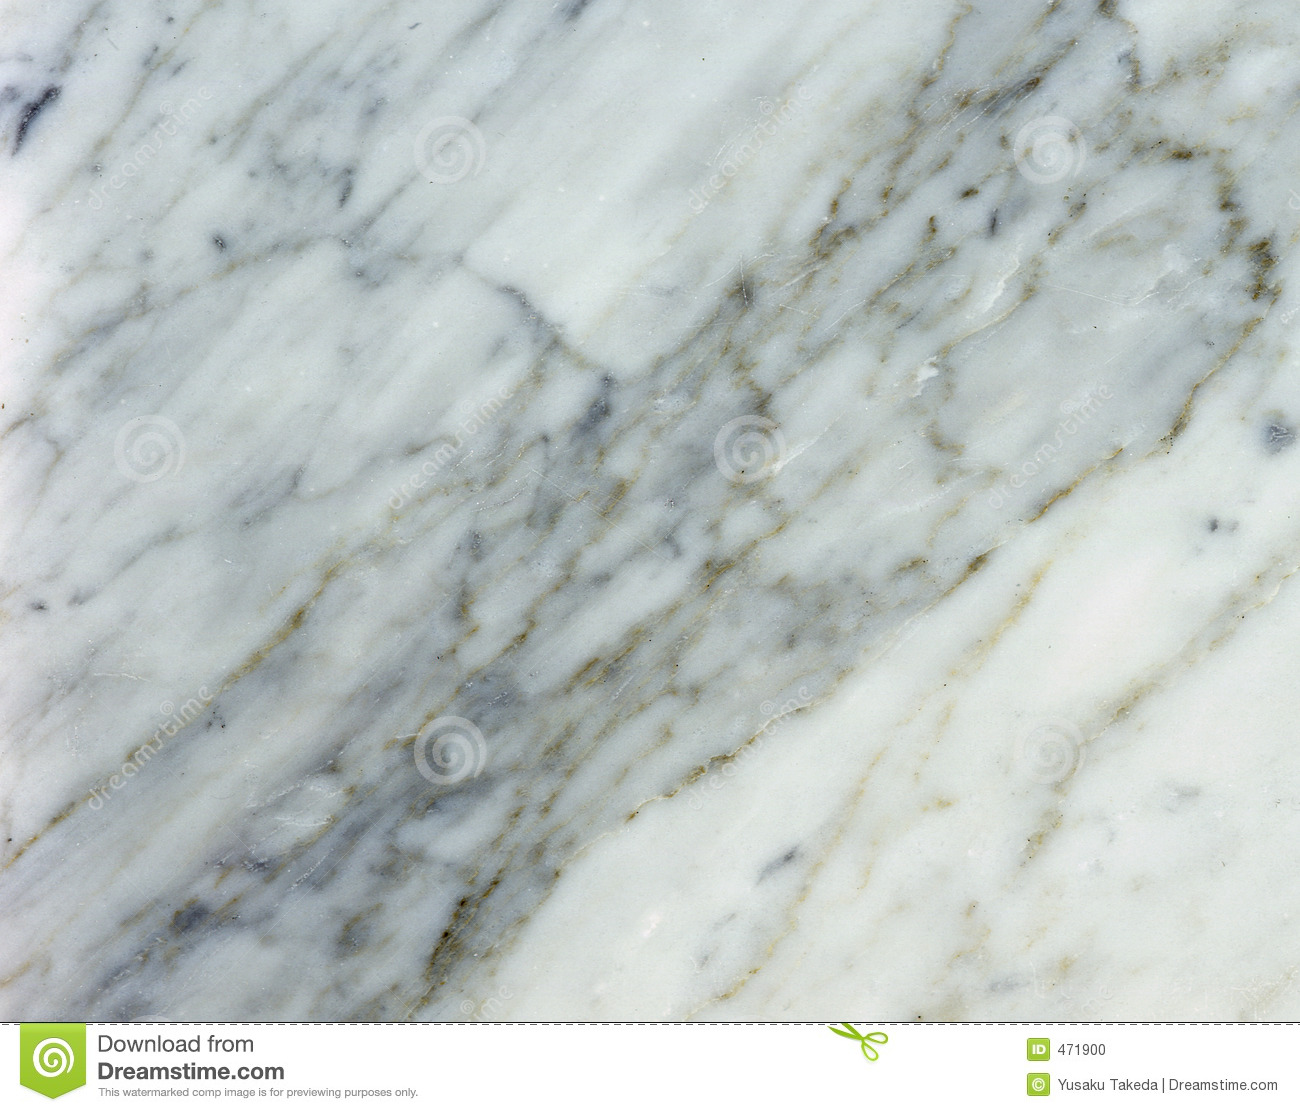 Marble Background Stock Photo - Image: 471900